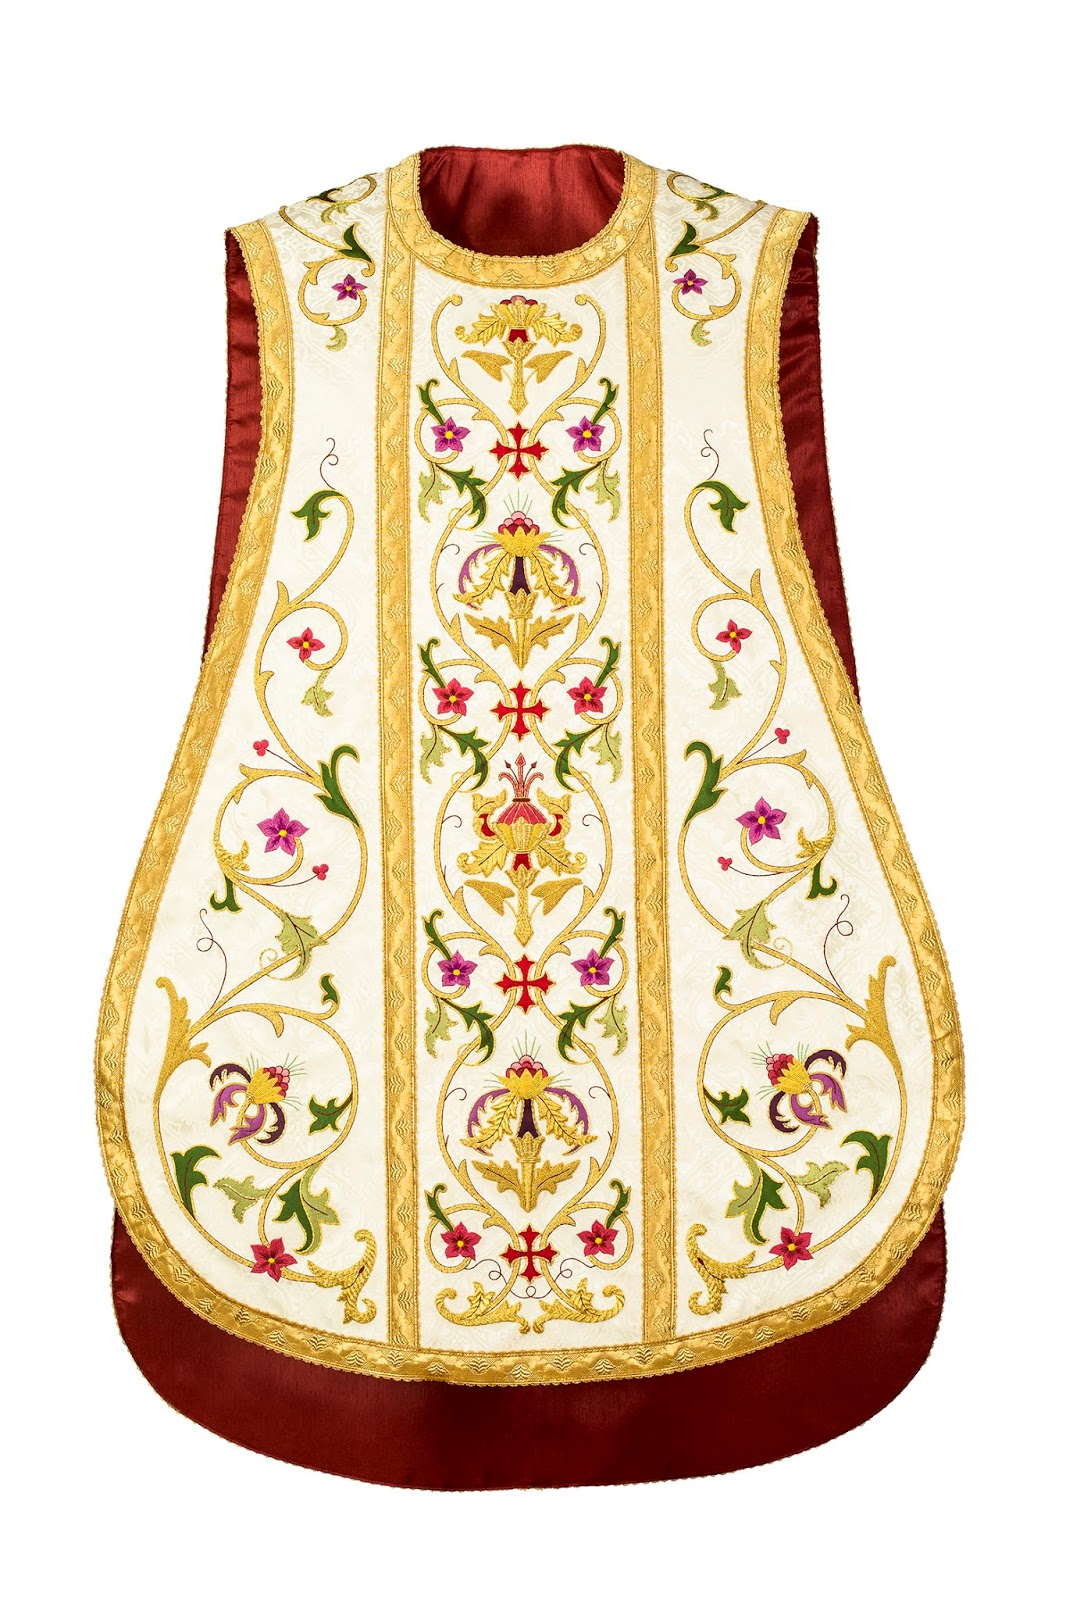 Crimson and Gold: Roman Chasuble in a Spanish Manner